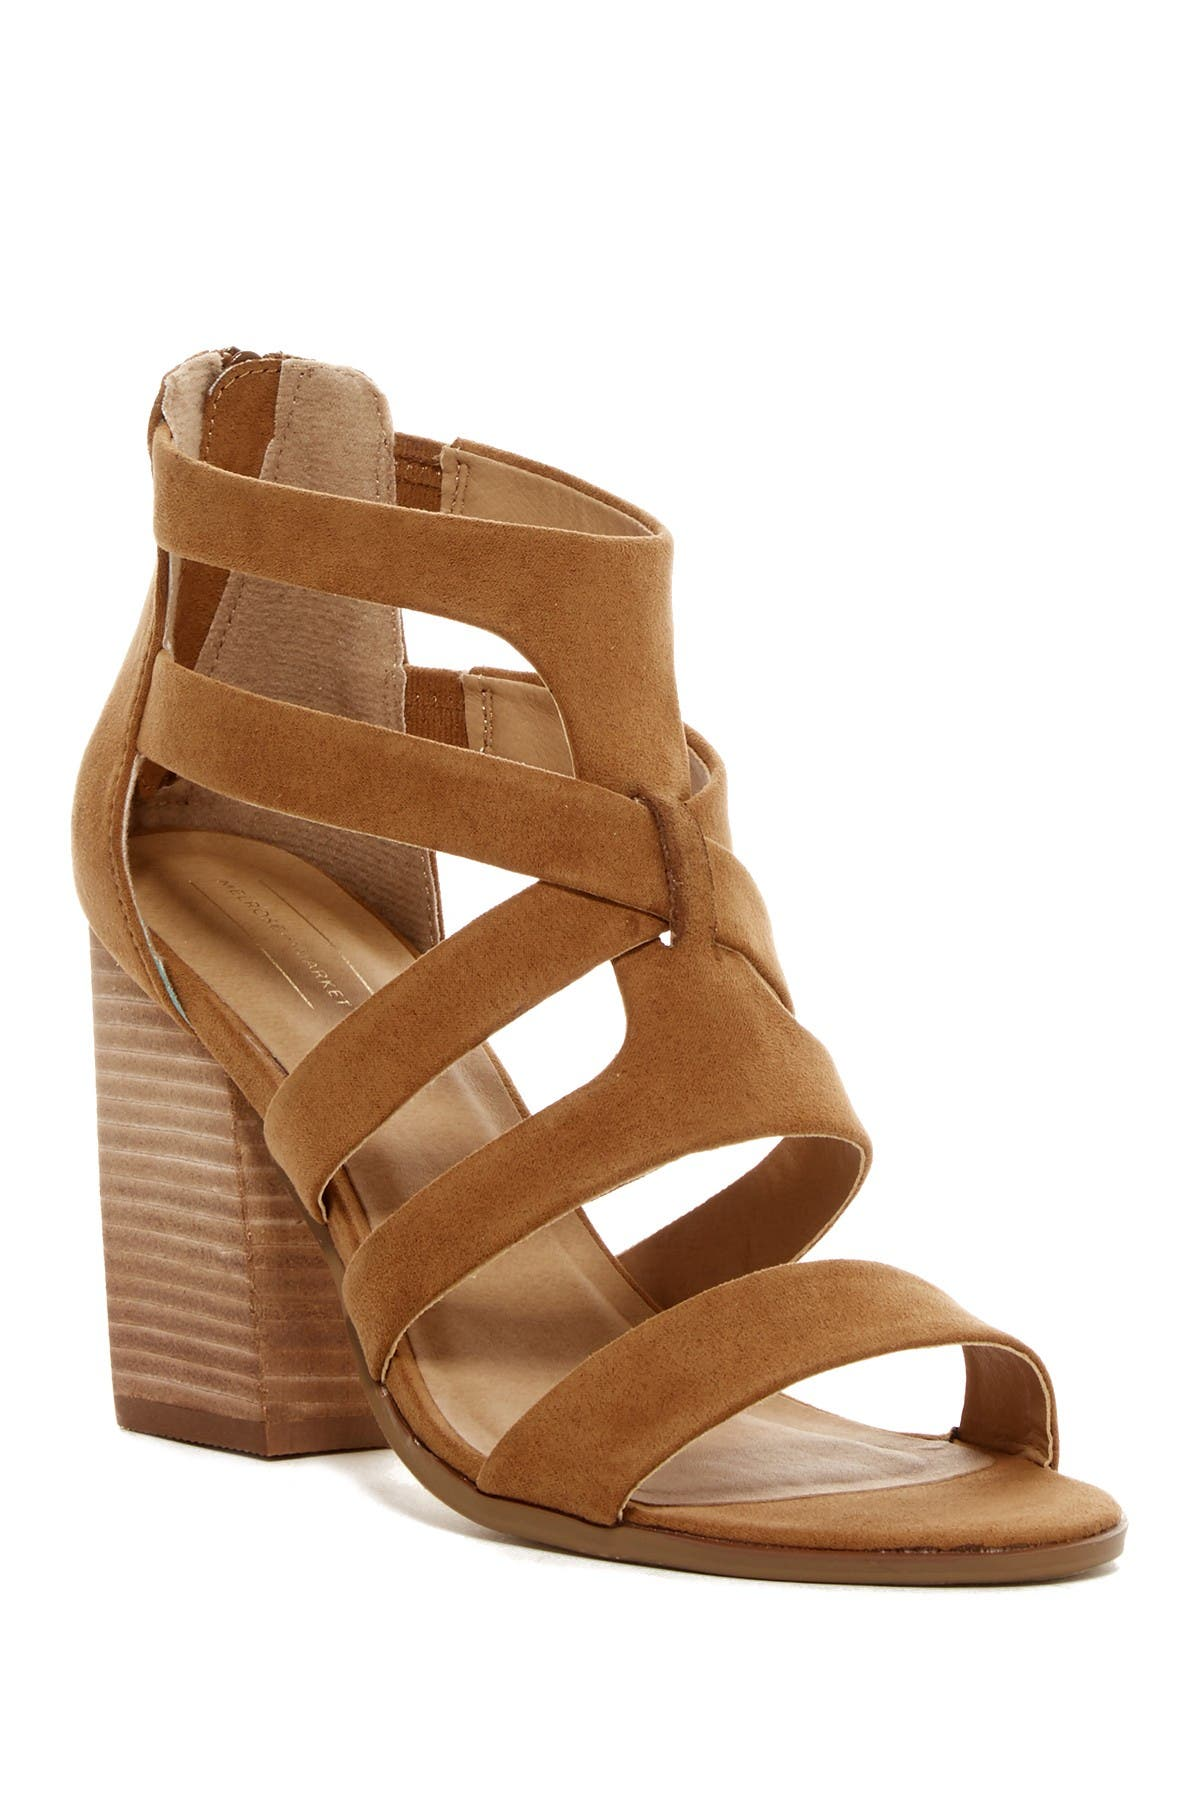 Image of Melrose and Market Rory Strappy Block Heel Sandal